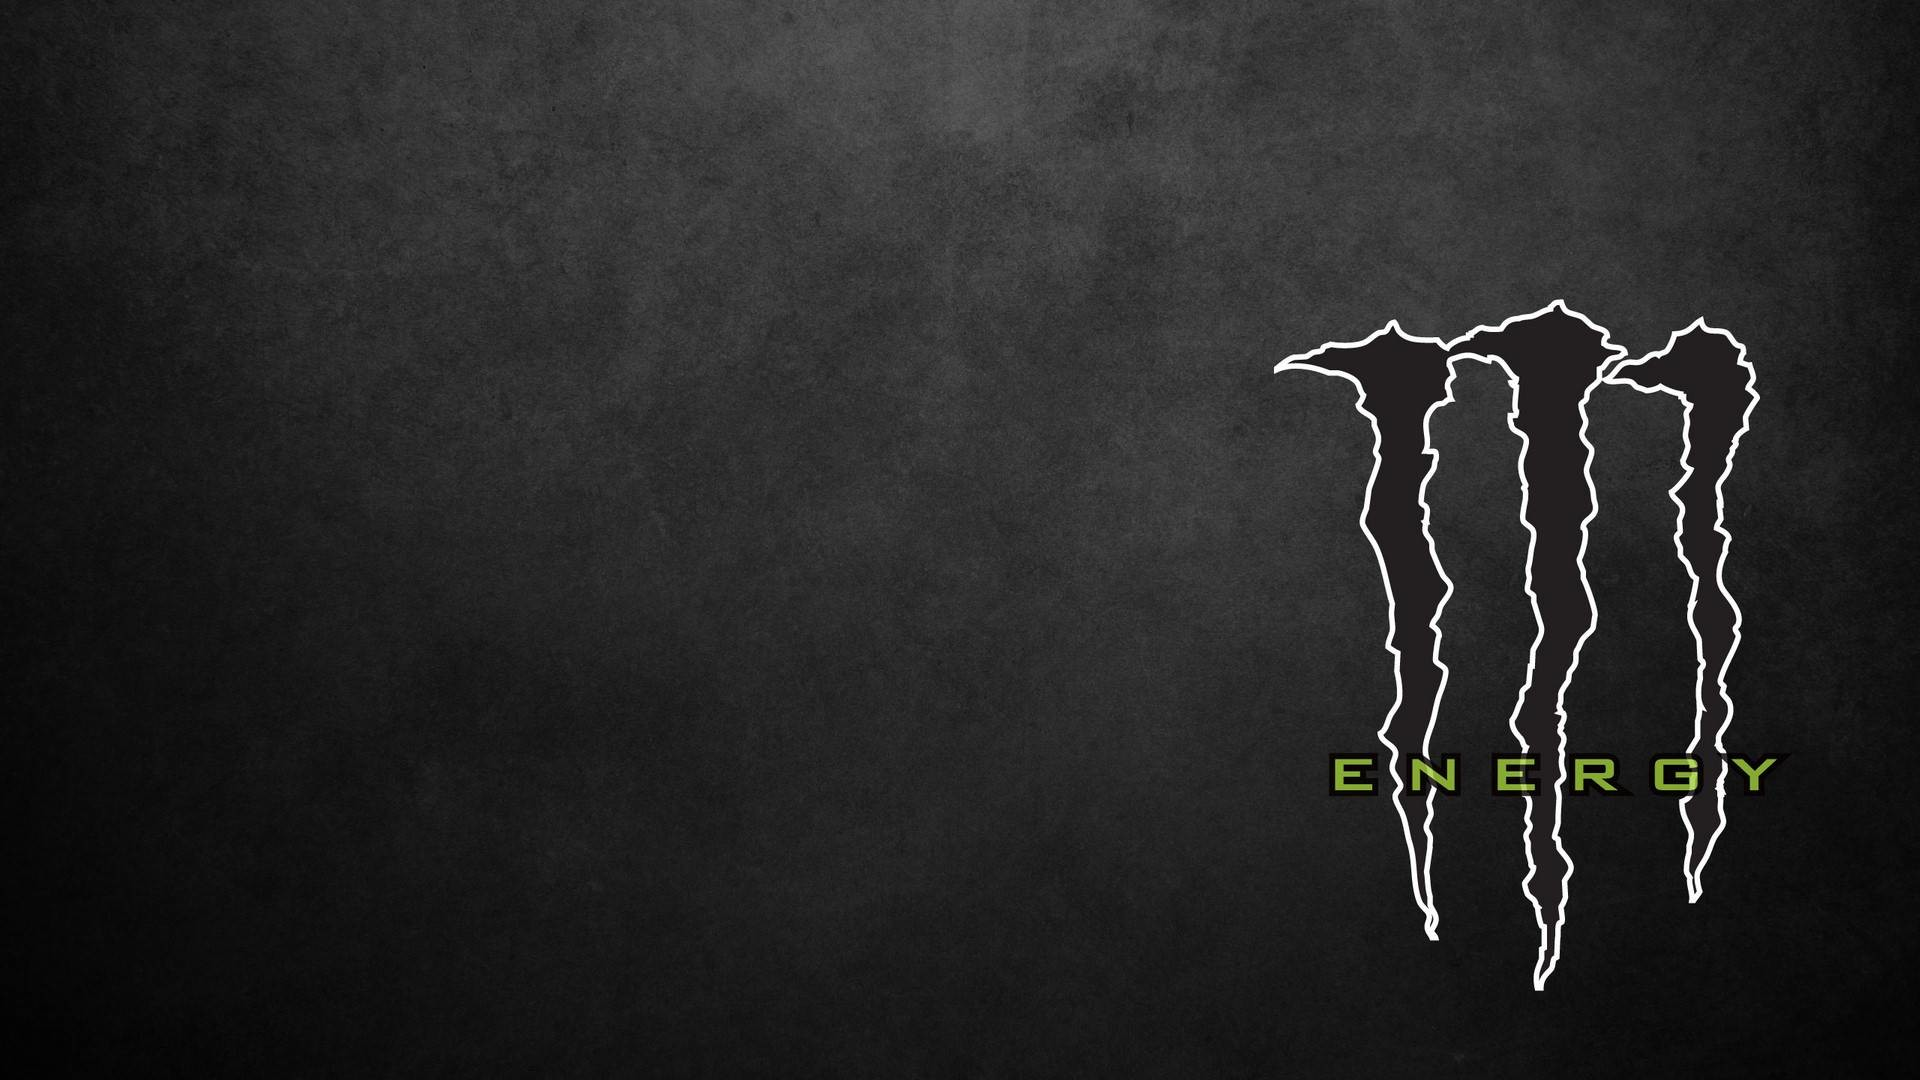 volcom stone wallpaper 53 pictures